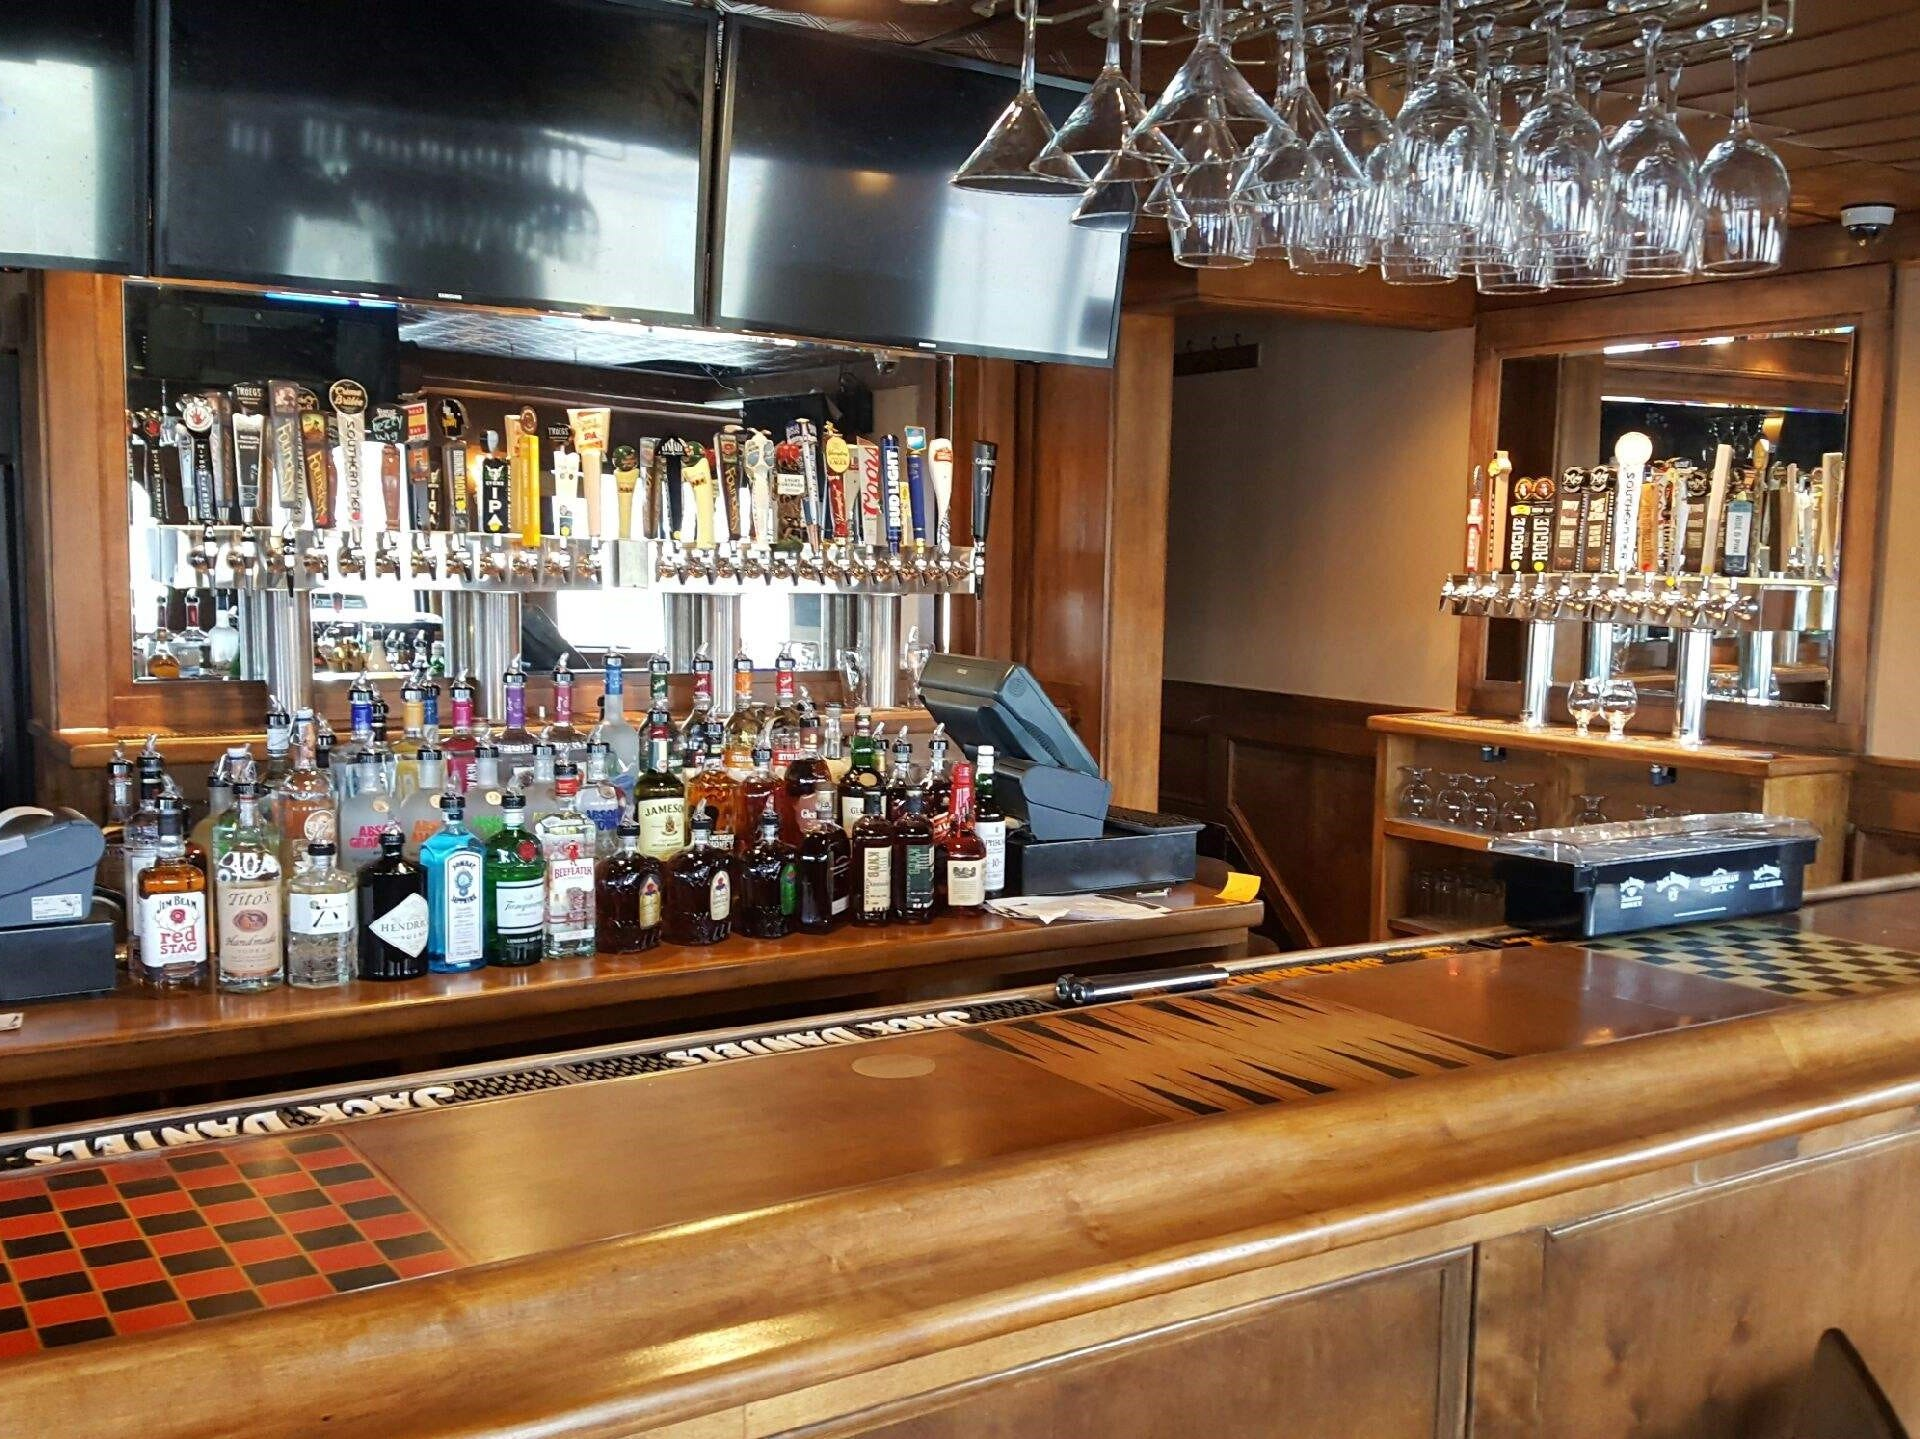 The Pour House is located on 4402 Watson Blvd in Johnson City.